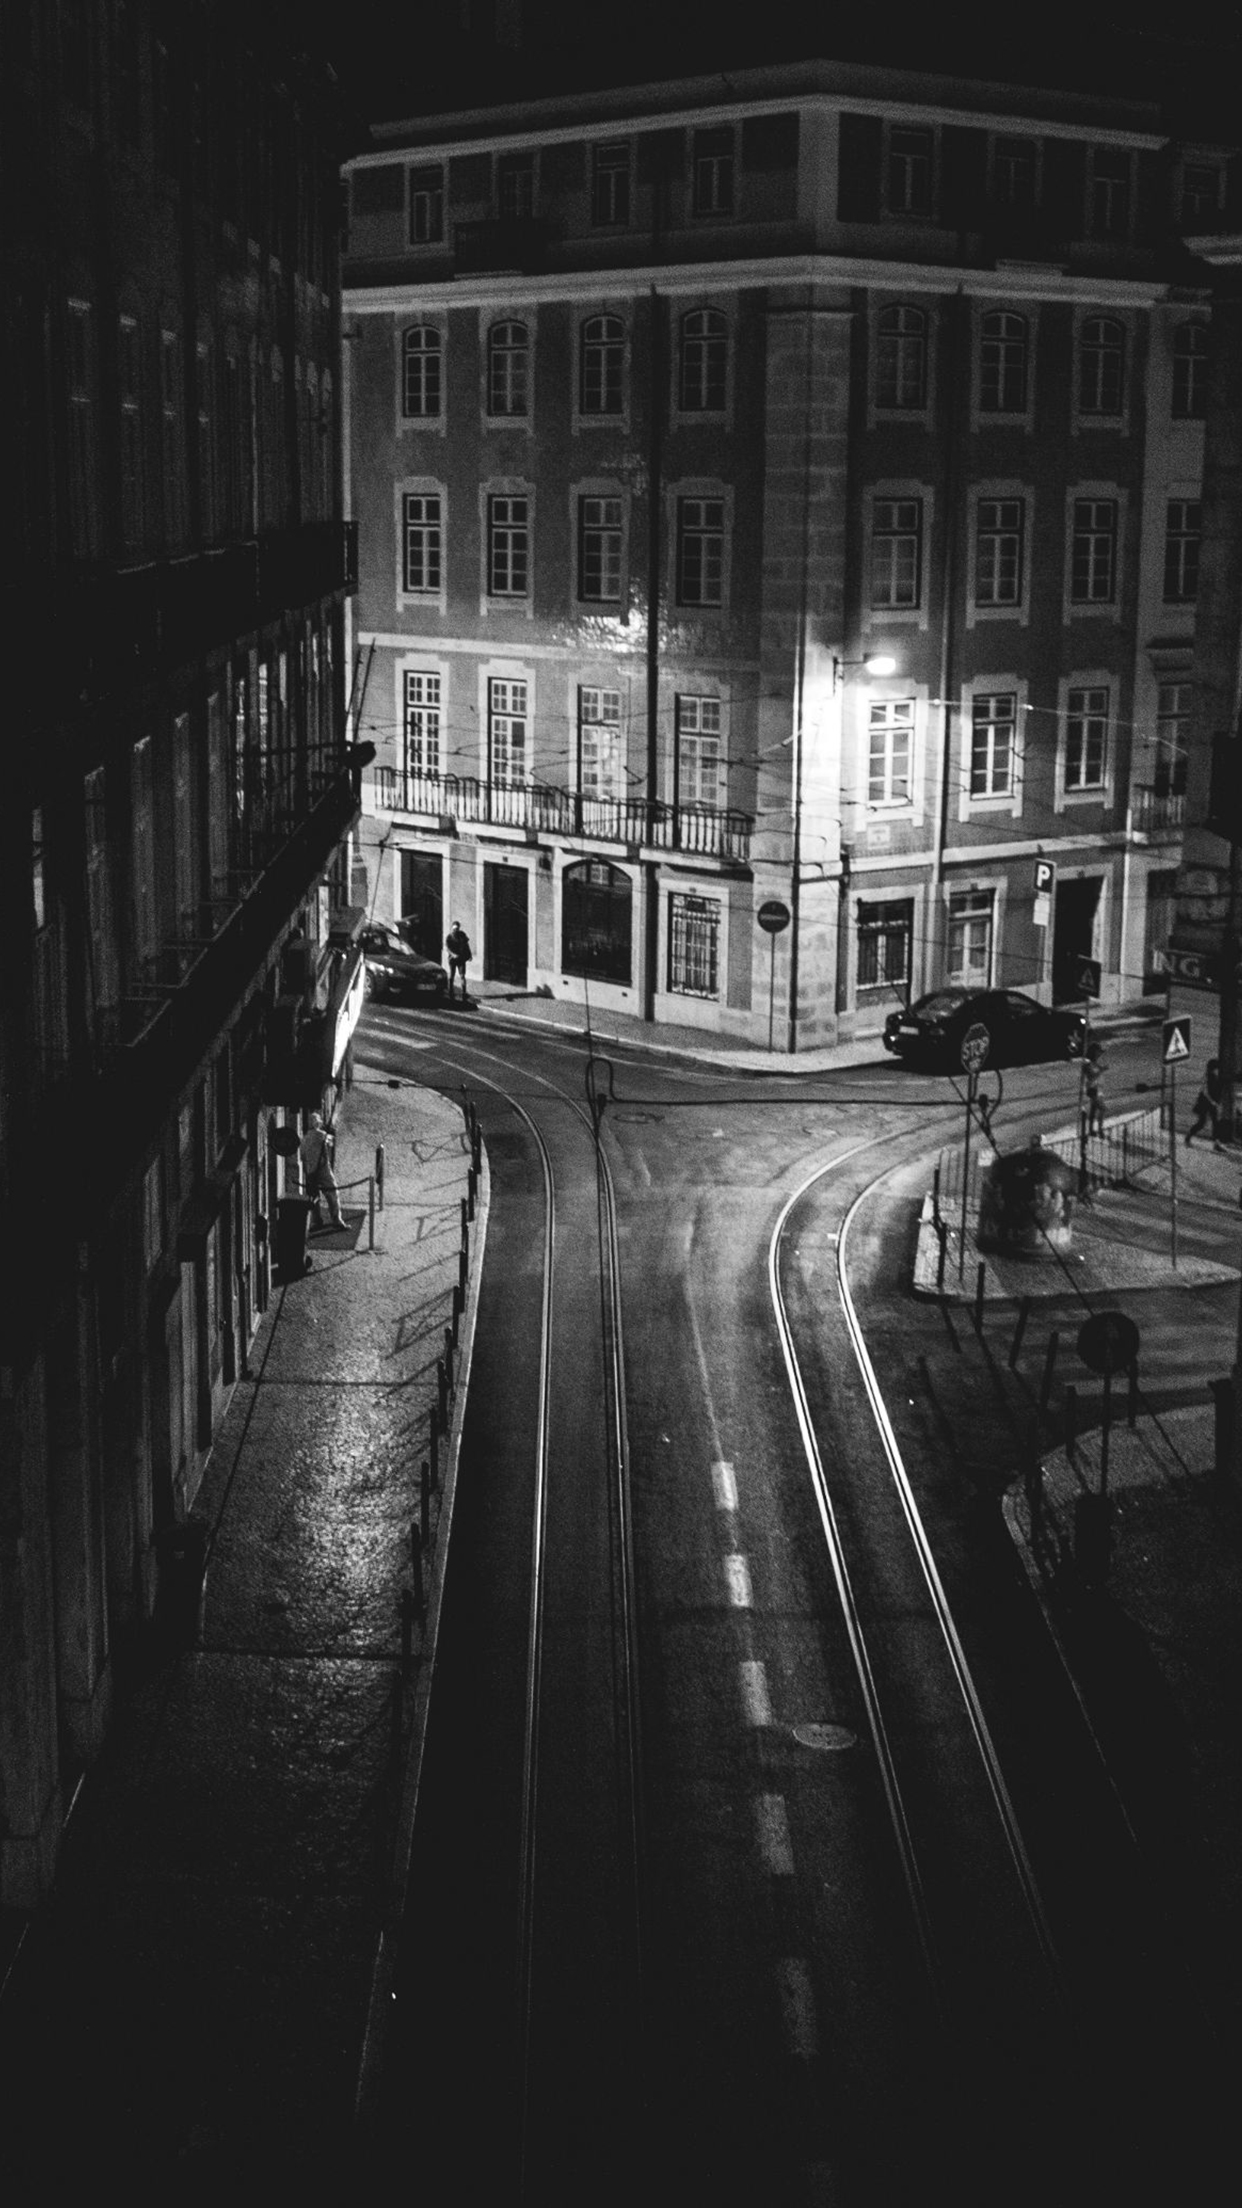 Girl Black And Gray Wallpaper Lisboa Black White Street Wallpaper For Iphone X 8 7 6